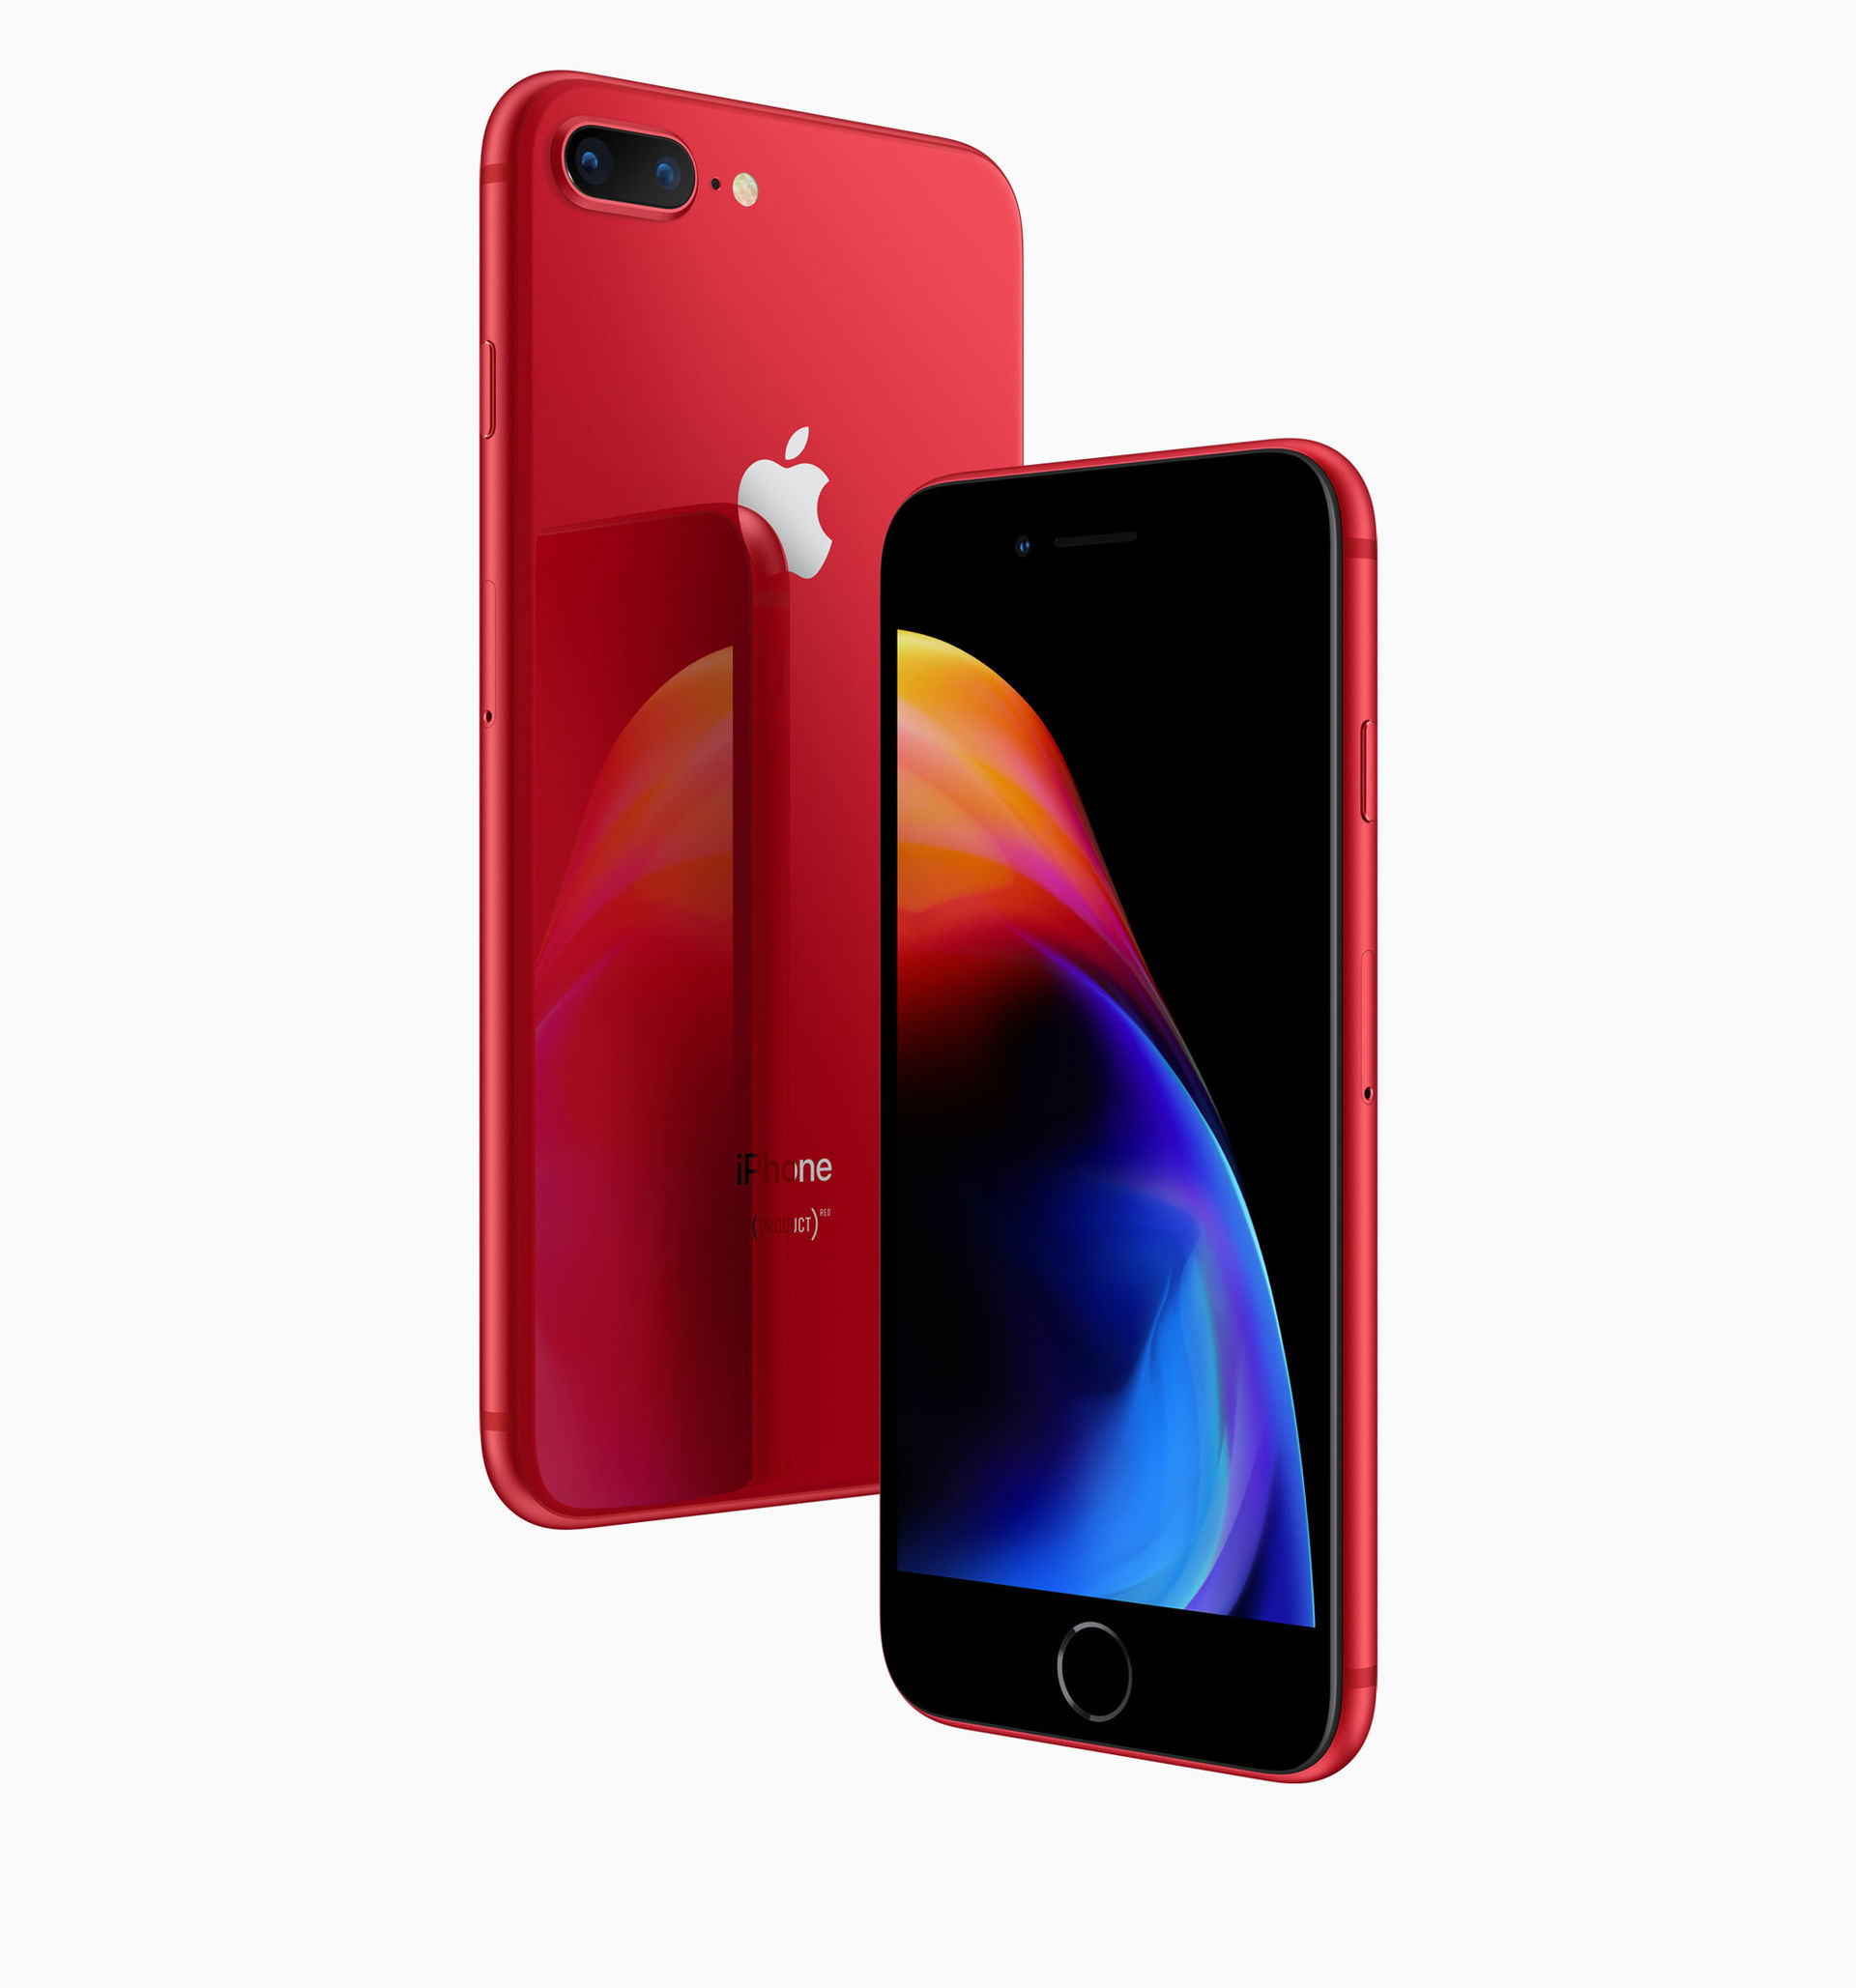 Apple släpper iPhone 8 och iPhone 8 Plus (Product)Red